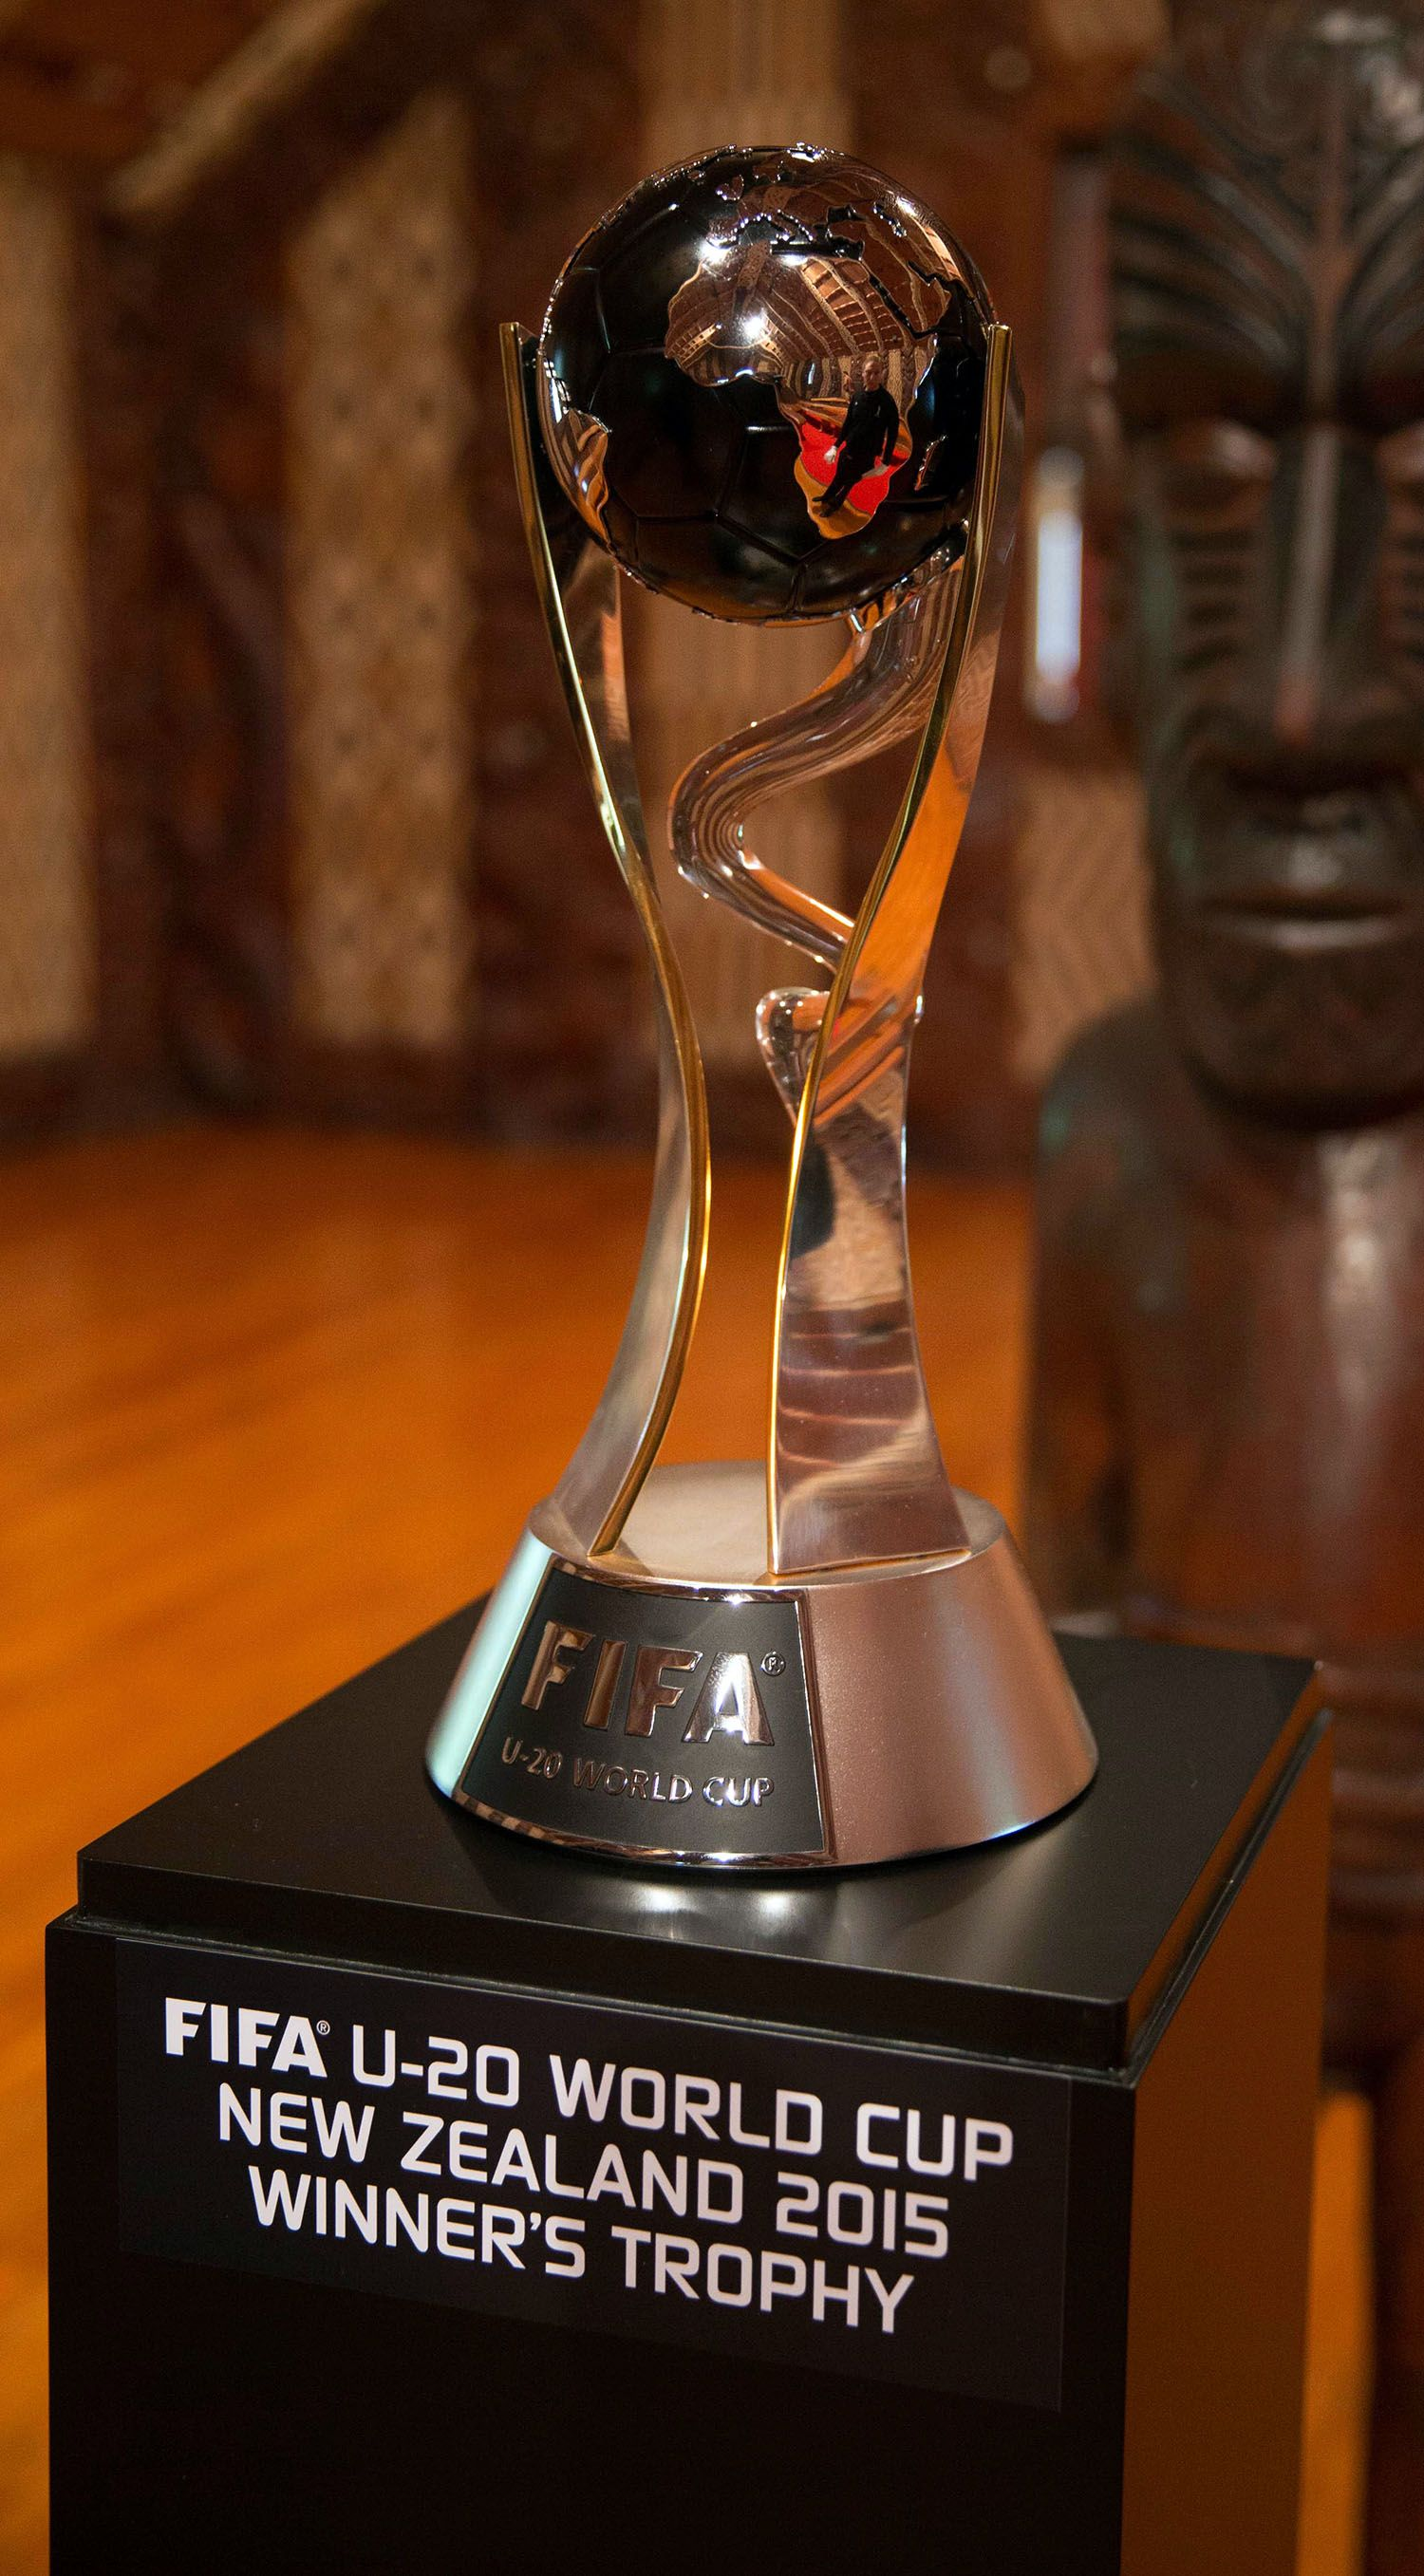 Sports And More U20 Worldcup Newzealand 0 Usa 4 Final 2 Games To Wins 6 Pts Fifa U20 World Cup Trophy Design Games To Win